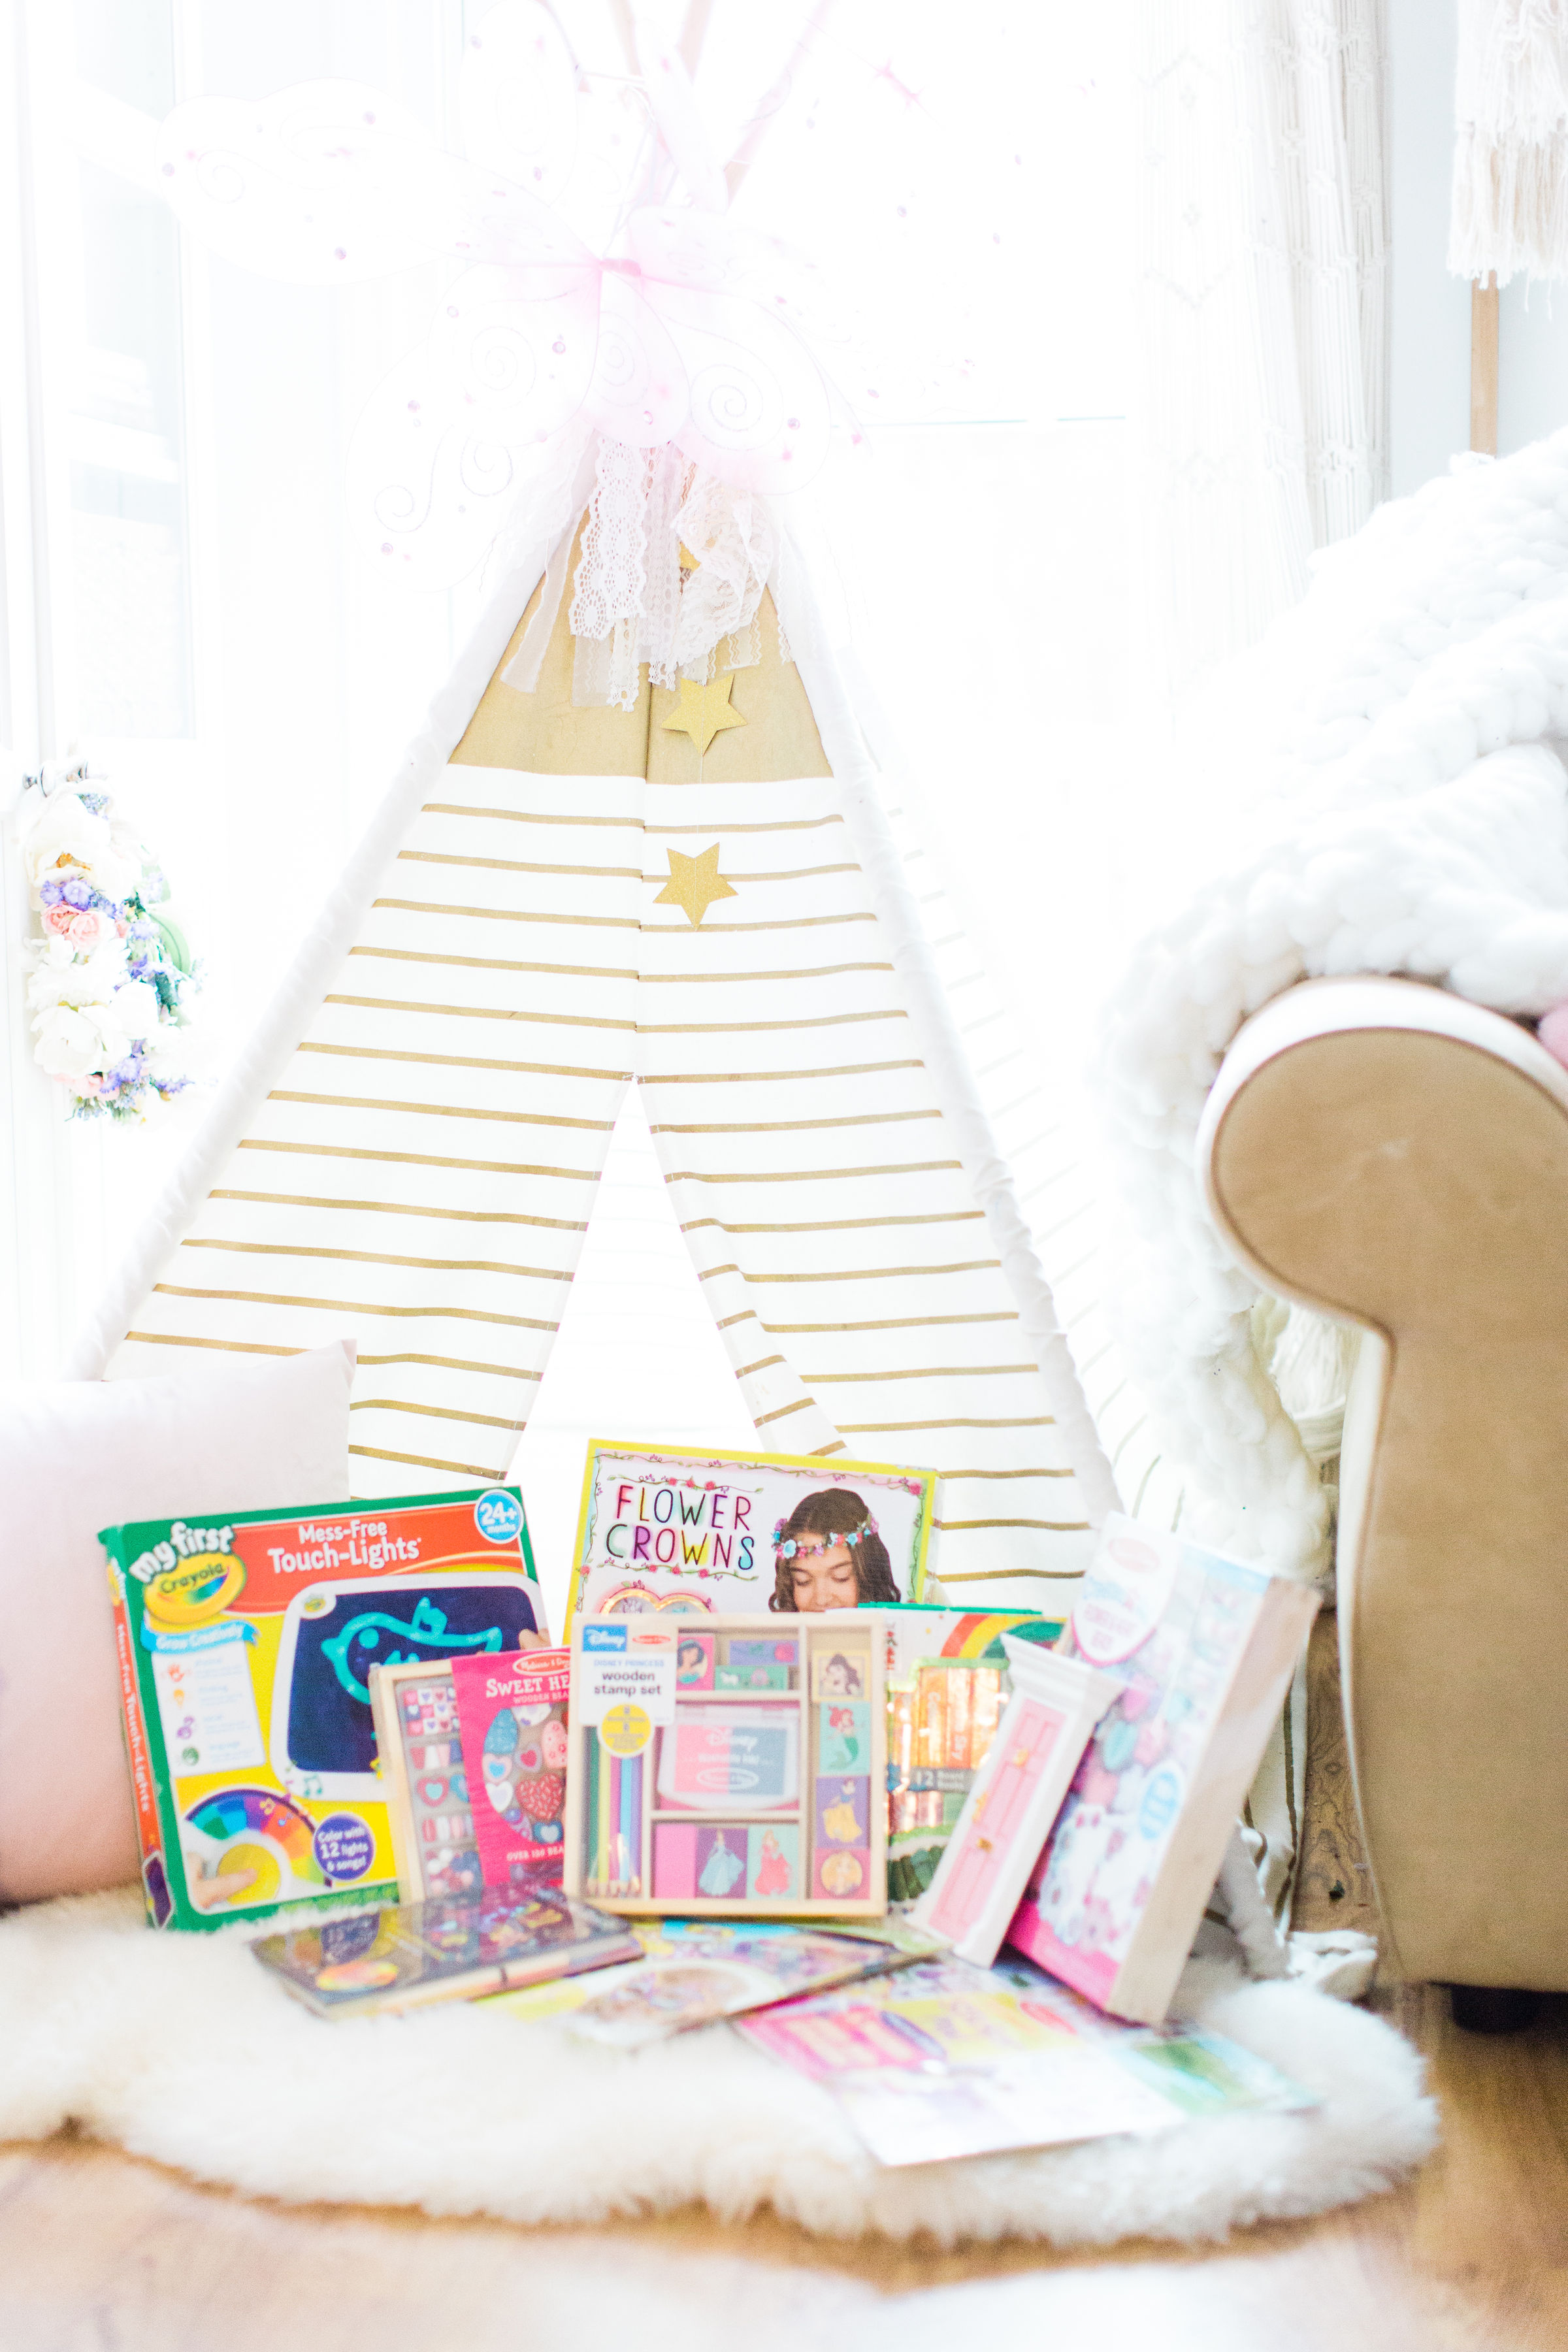 Searching for the perfect holiday gift for the little kids in your life? Fret not; I've rounded up all of the best toys and crafts that little kids will not only love, but use for years to come! Click through for the details. #giftguide #kidstoys | glitterinc.com | @glitterinc